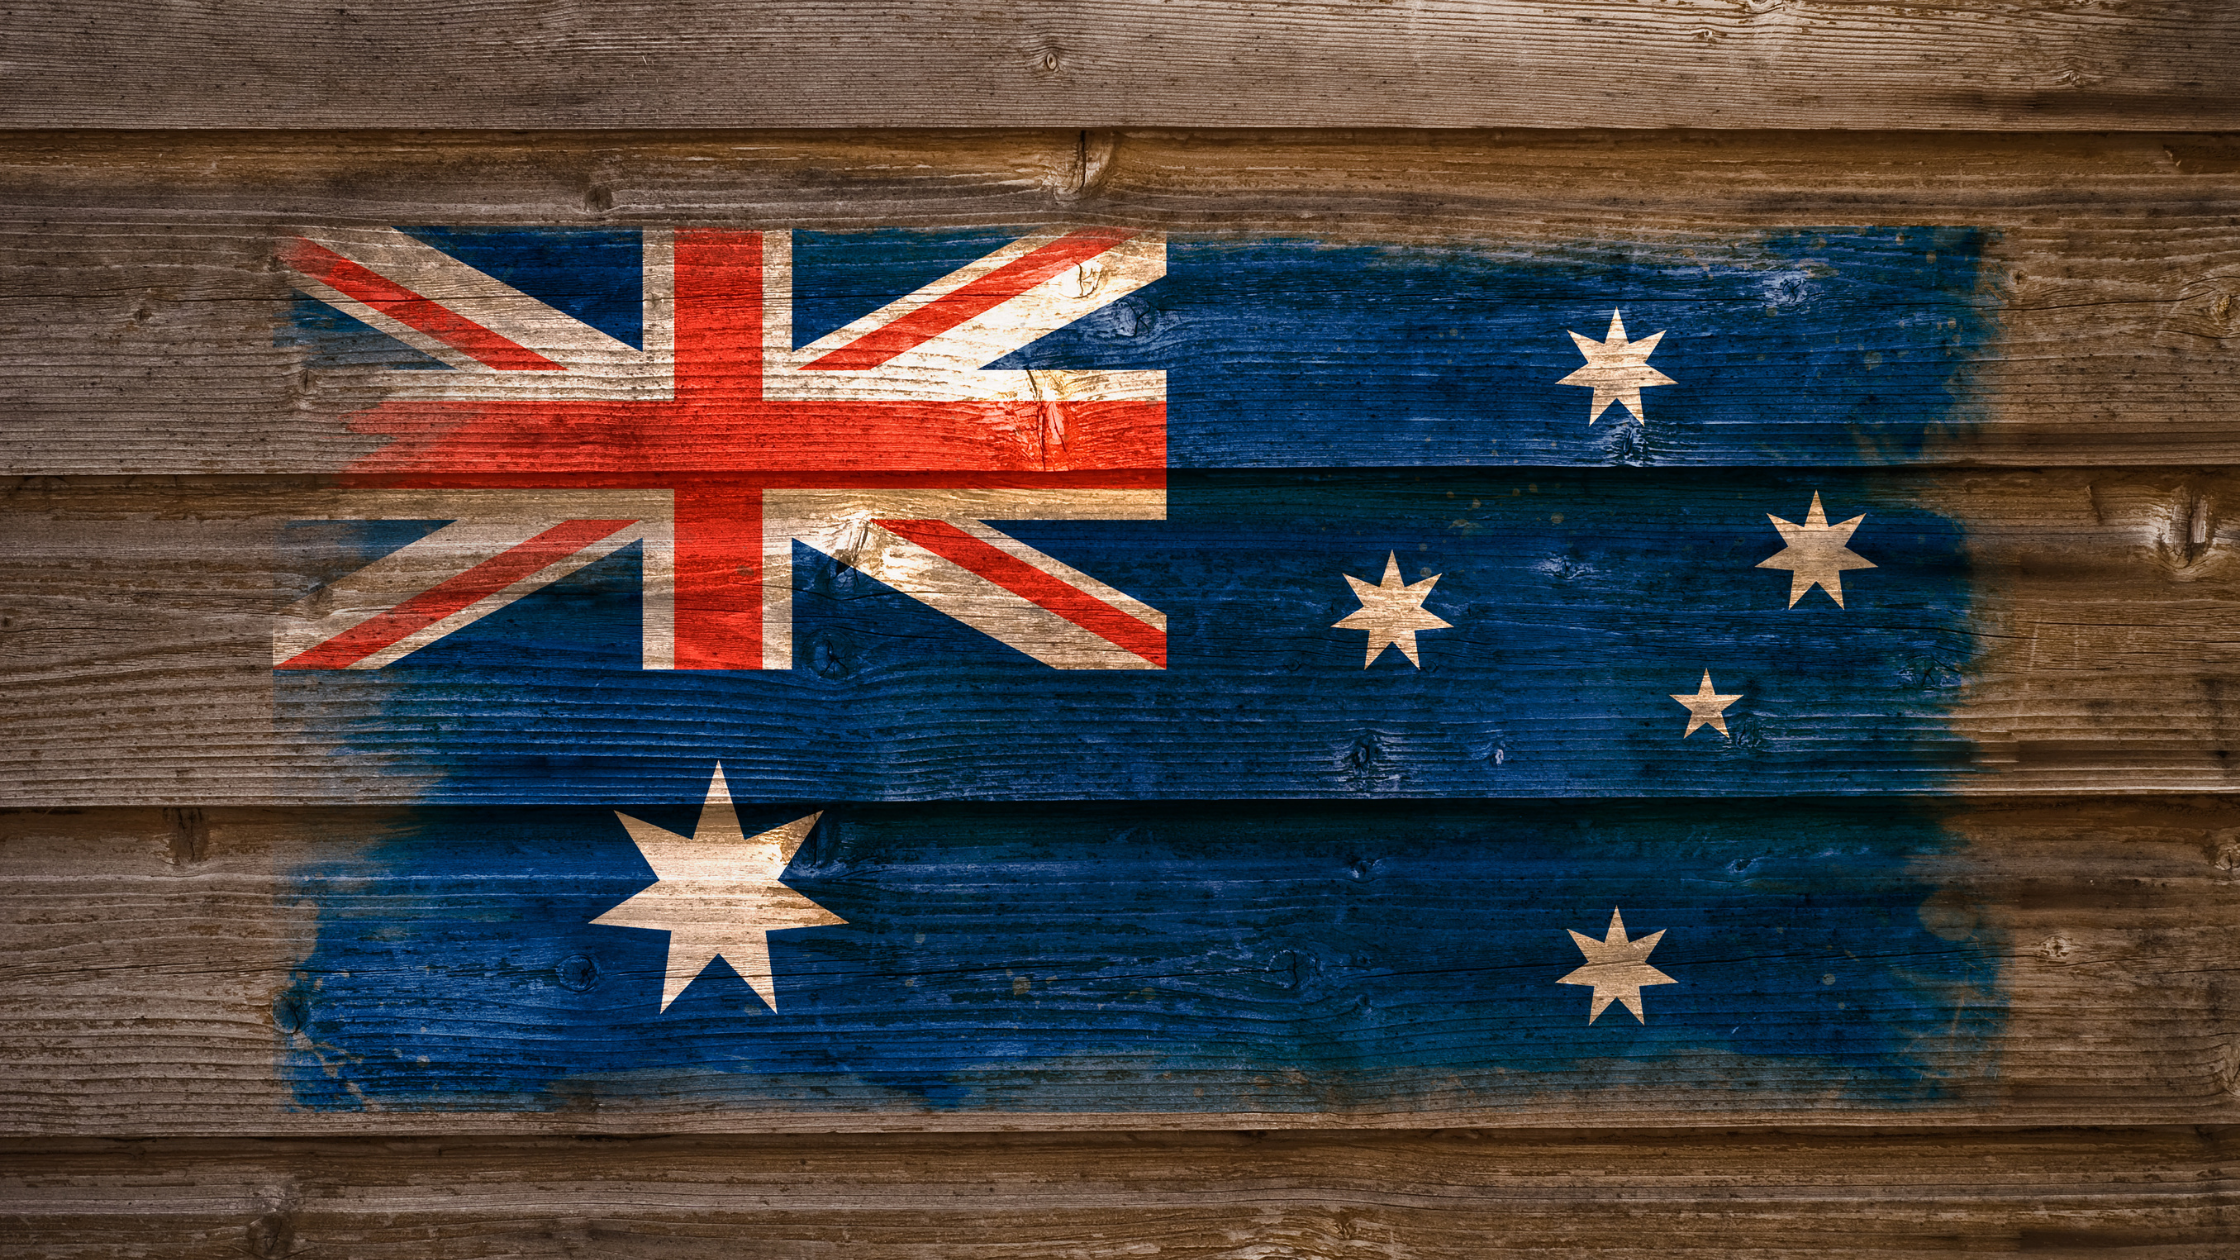 Australia one of the best countries in terms of credit access